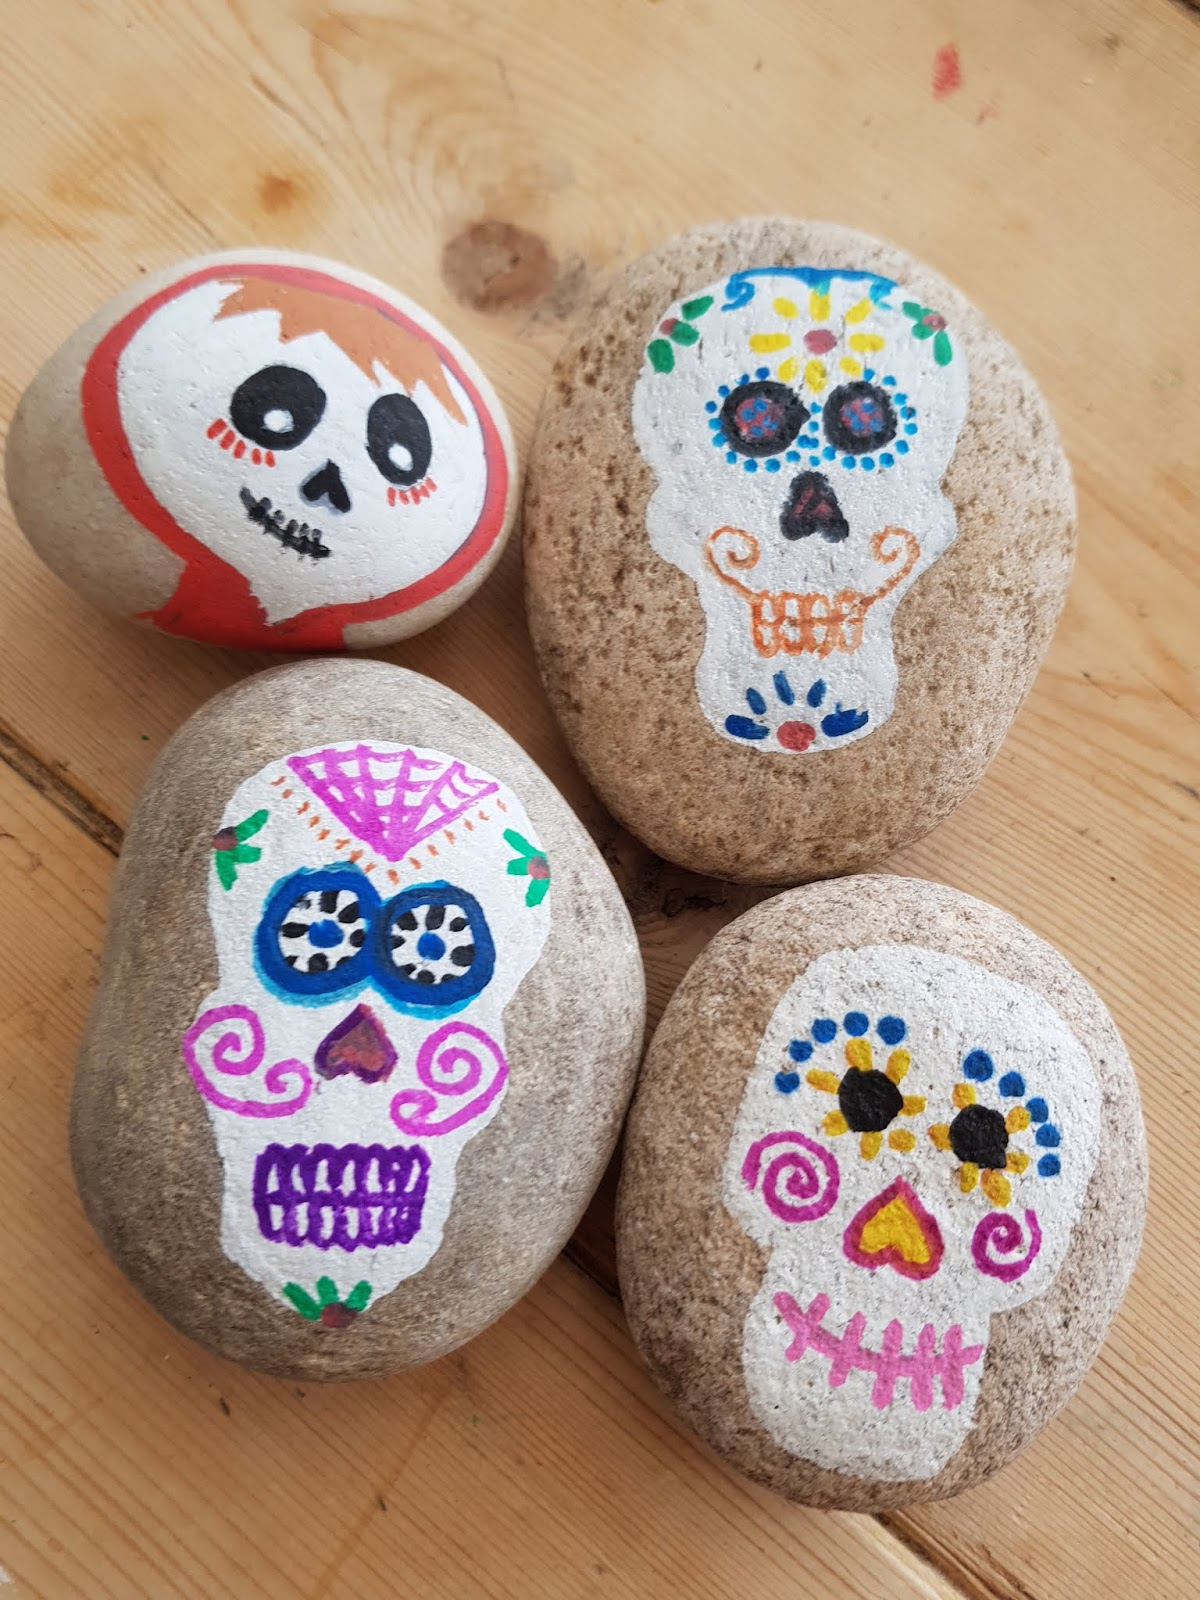 Life in the Mum\'s Lane: Rock Decorating Ideas